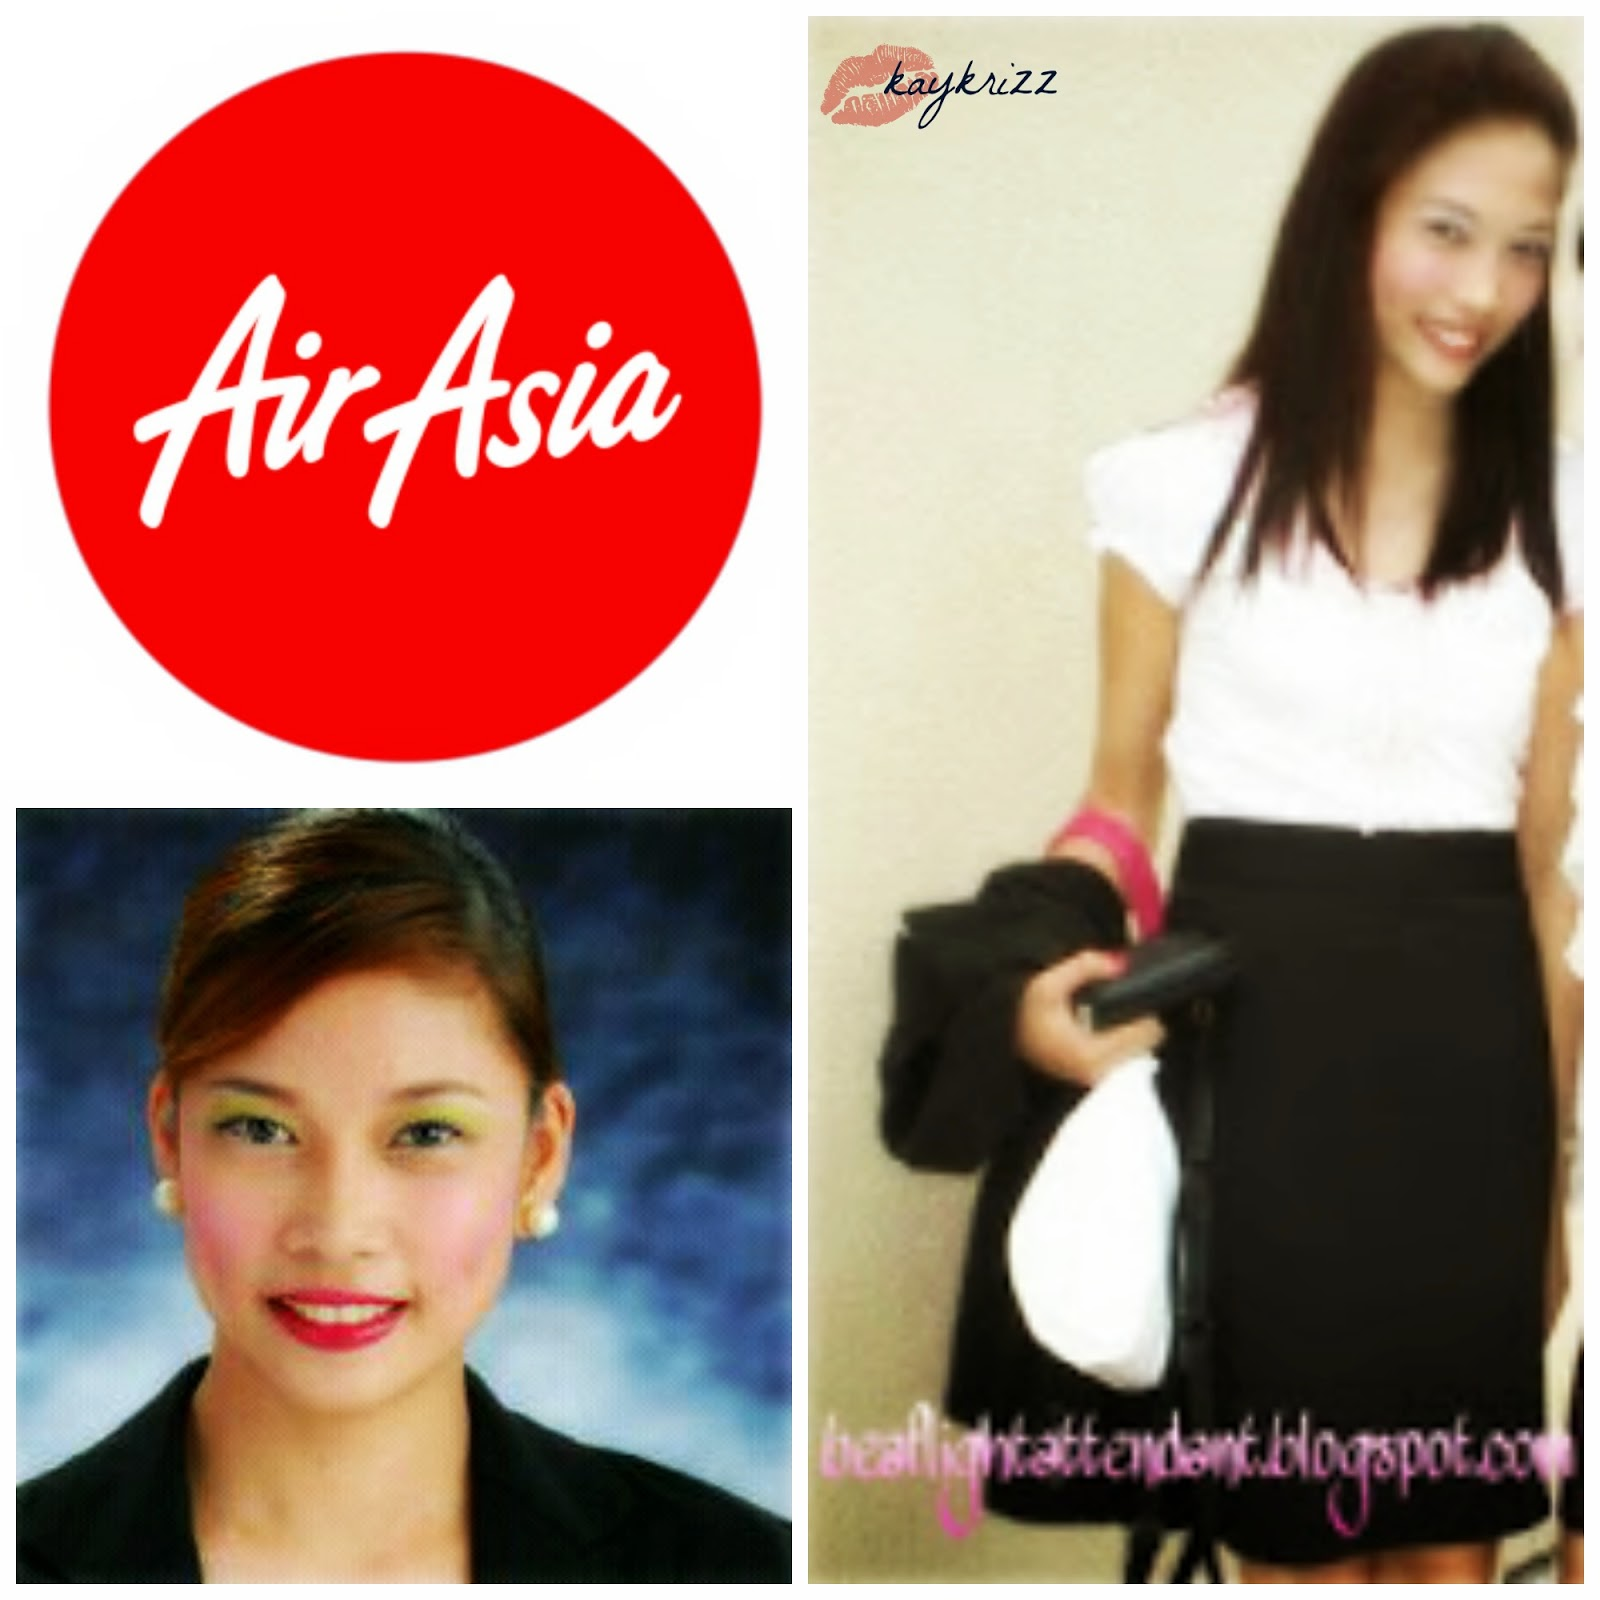 kaykrizz interview tips series part cabin crew interview air asia cabin crew recruitment experience